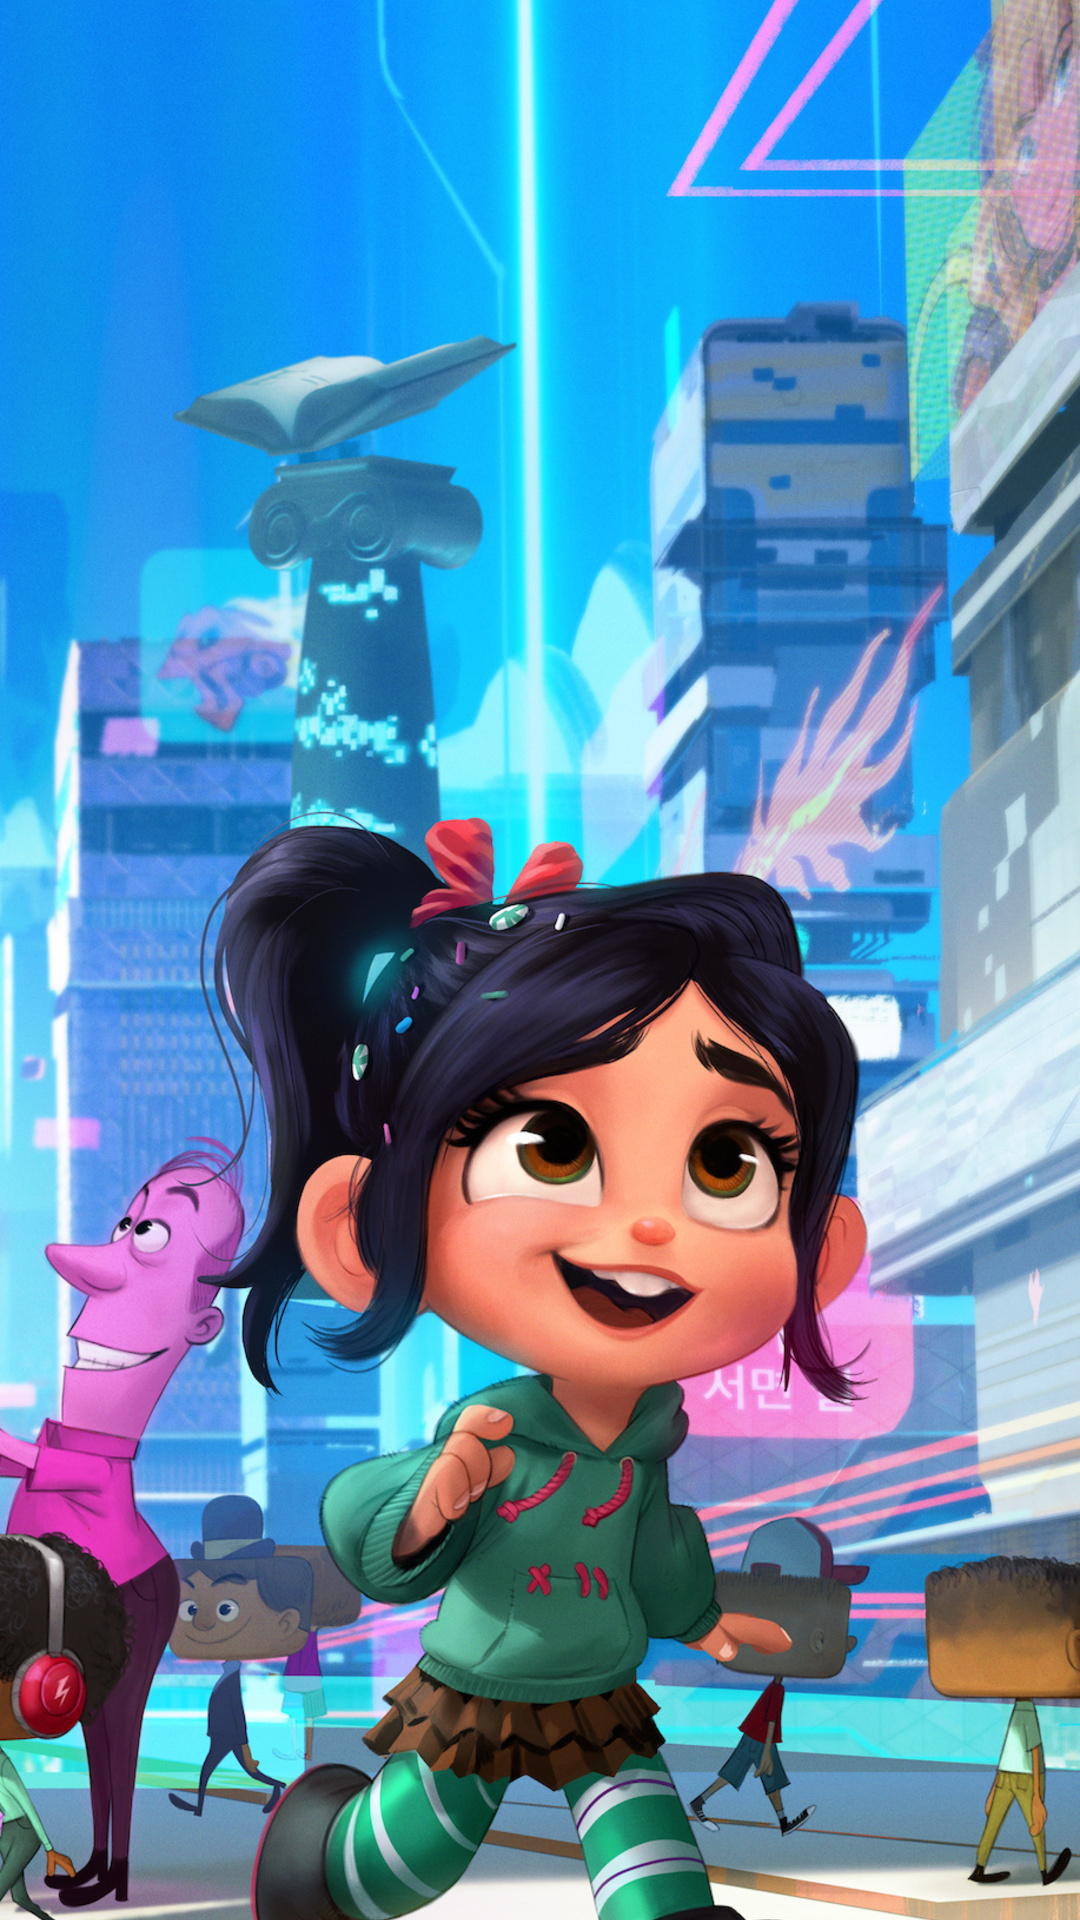 wreck-it-ralph-2-2018-movie-4k-77.jpg